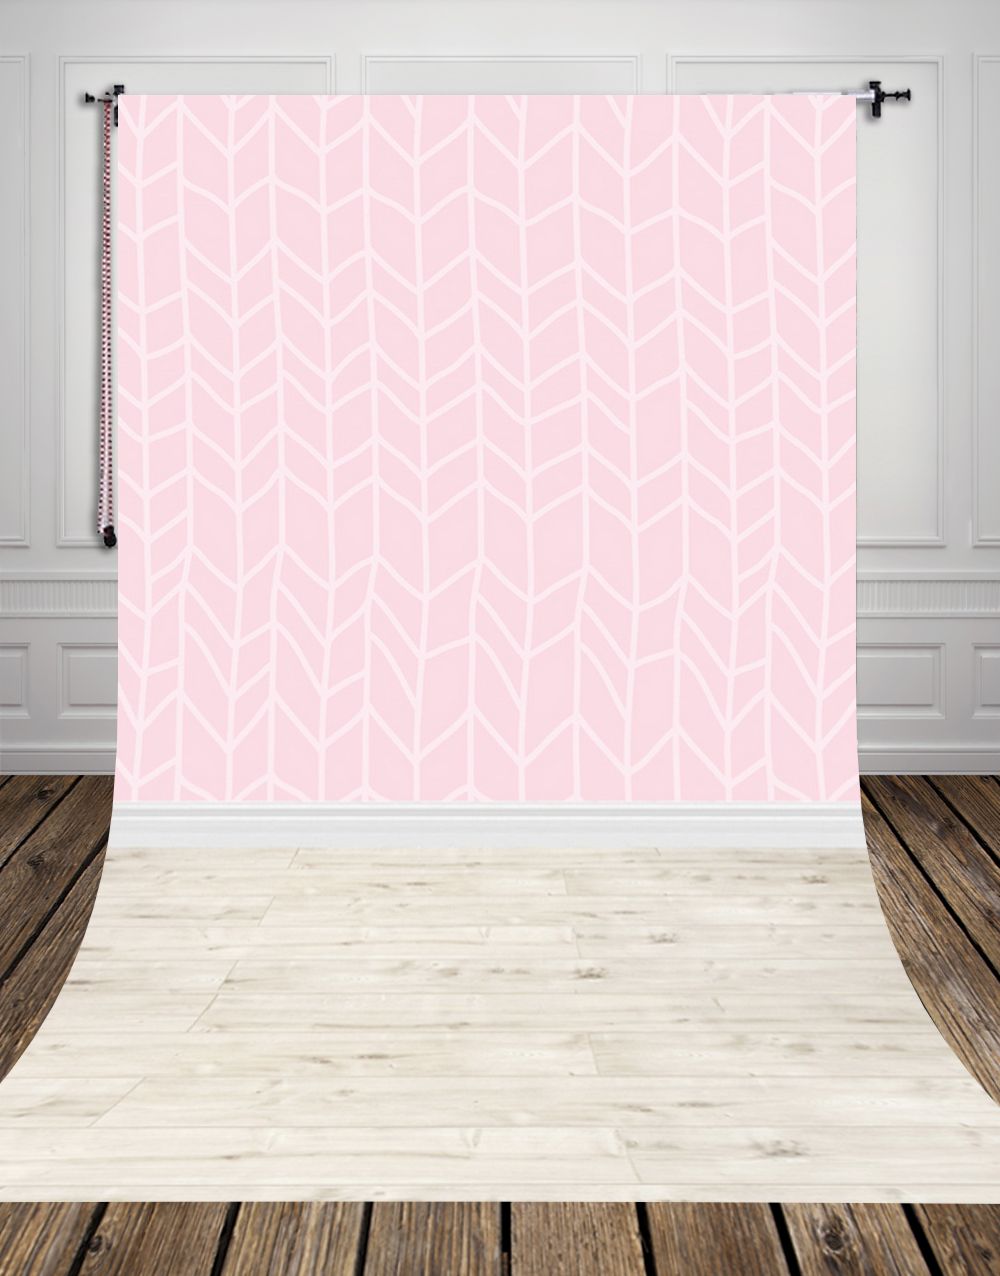 5x10ft(1.5x3m) light-colored studio photo background backdrop made of  Art fabric pink wallpaper for newborn photography D-9712<br>